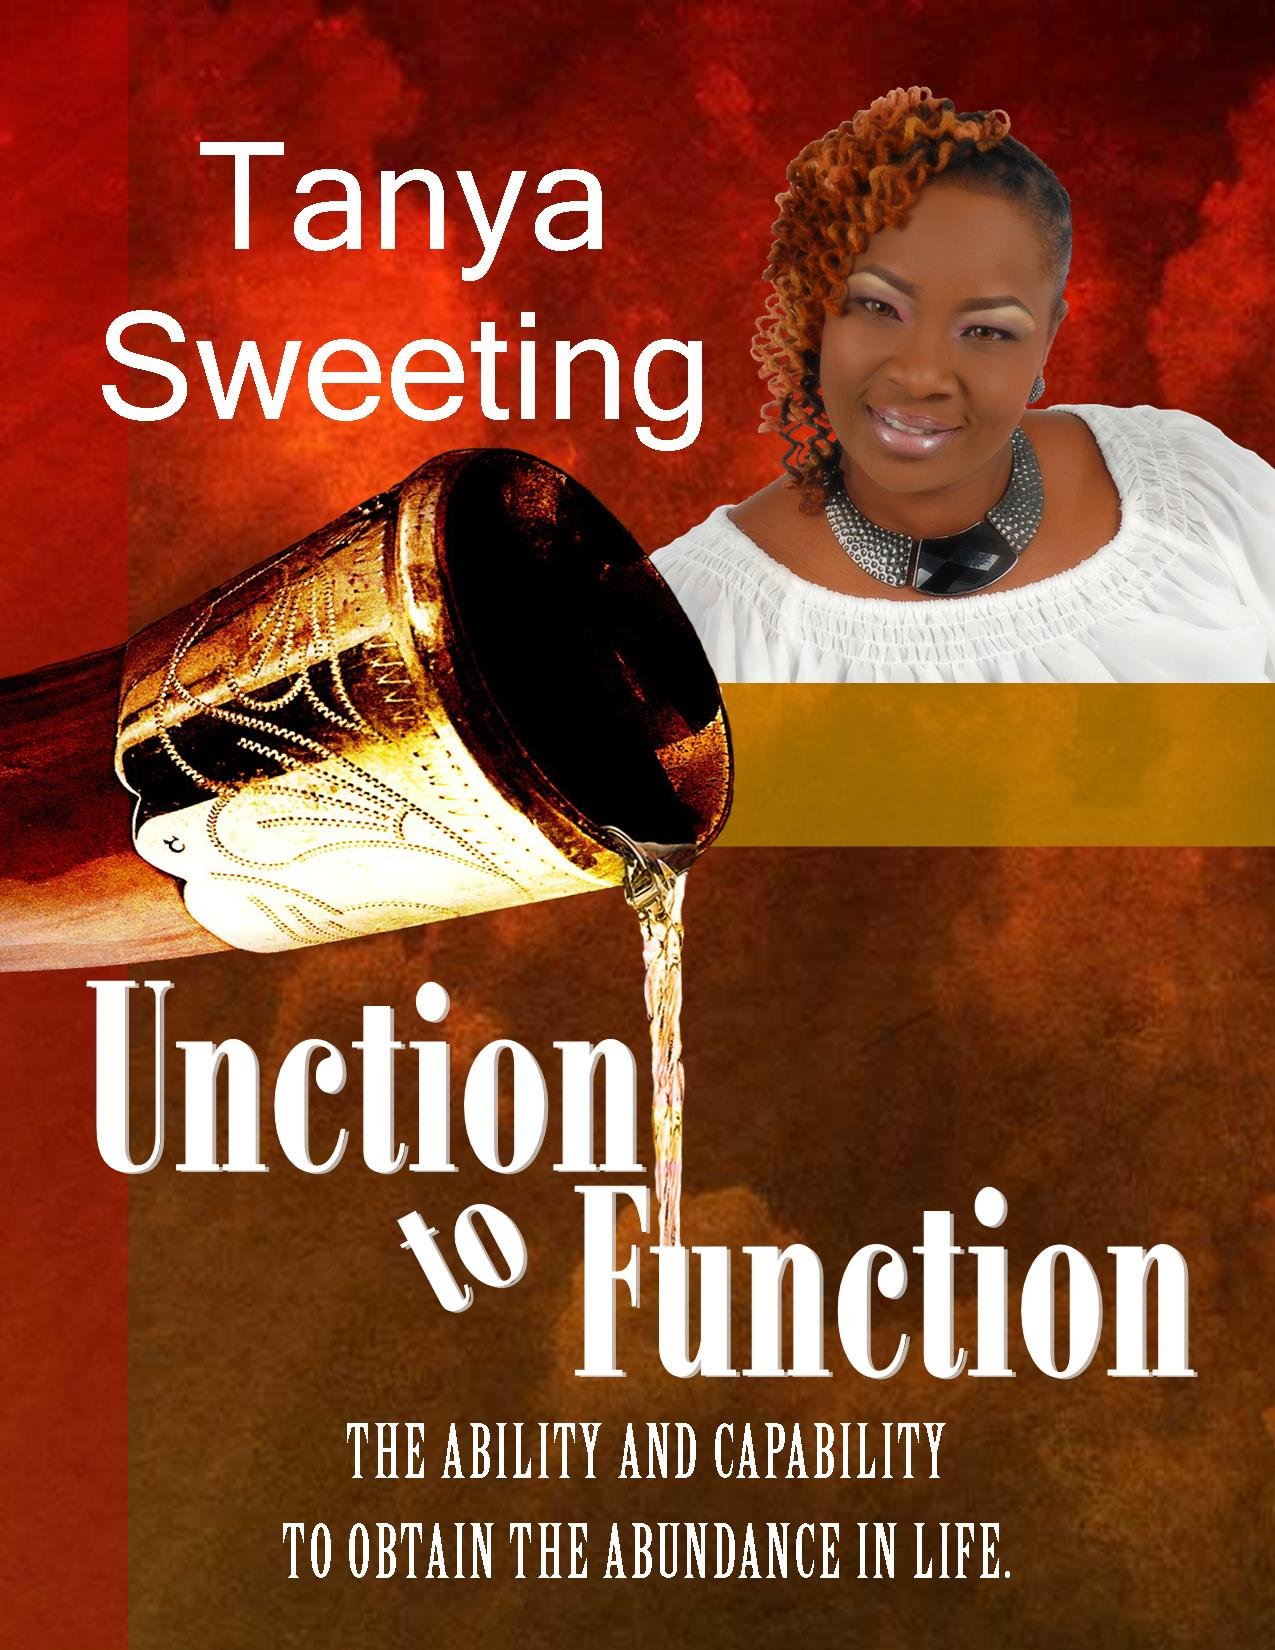 Unction to Function